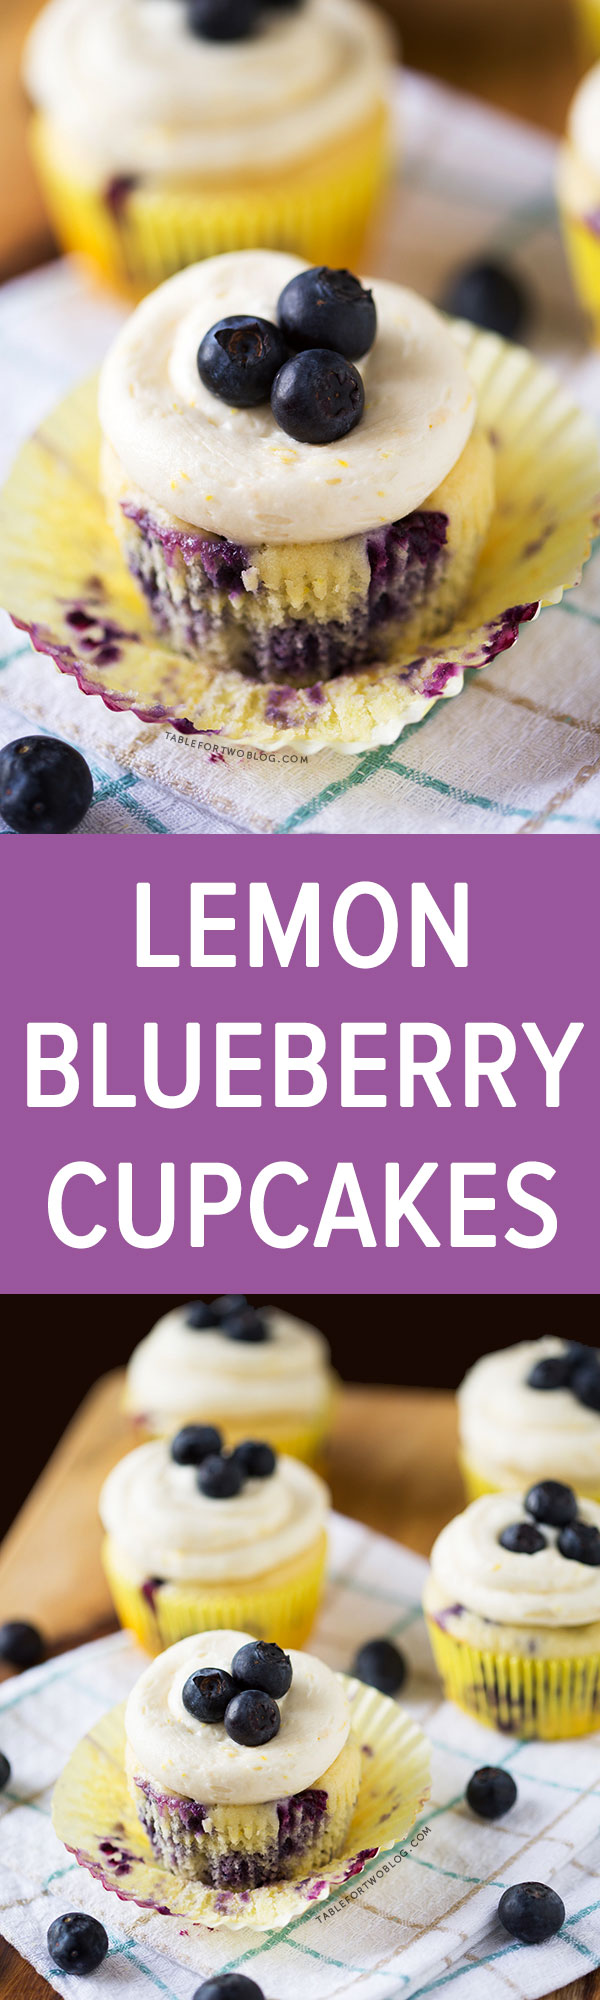 Lemon Blueberry Cupcakes | www.tablefortwoblog.com